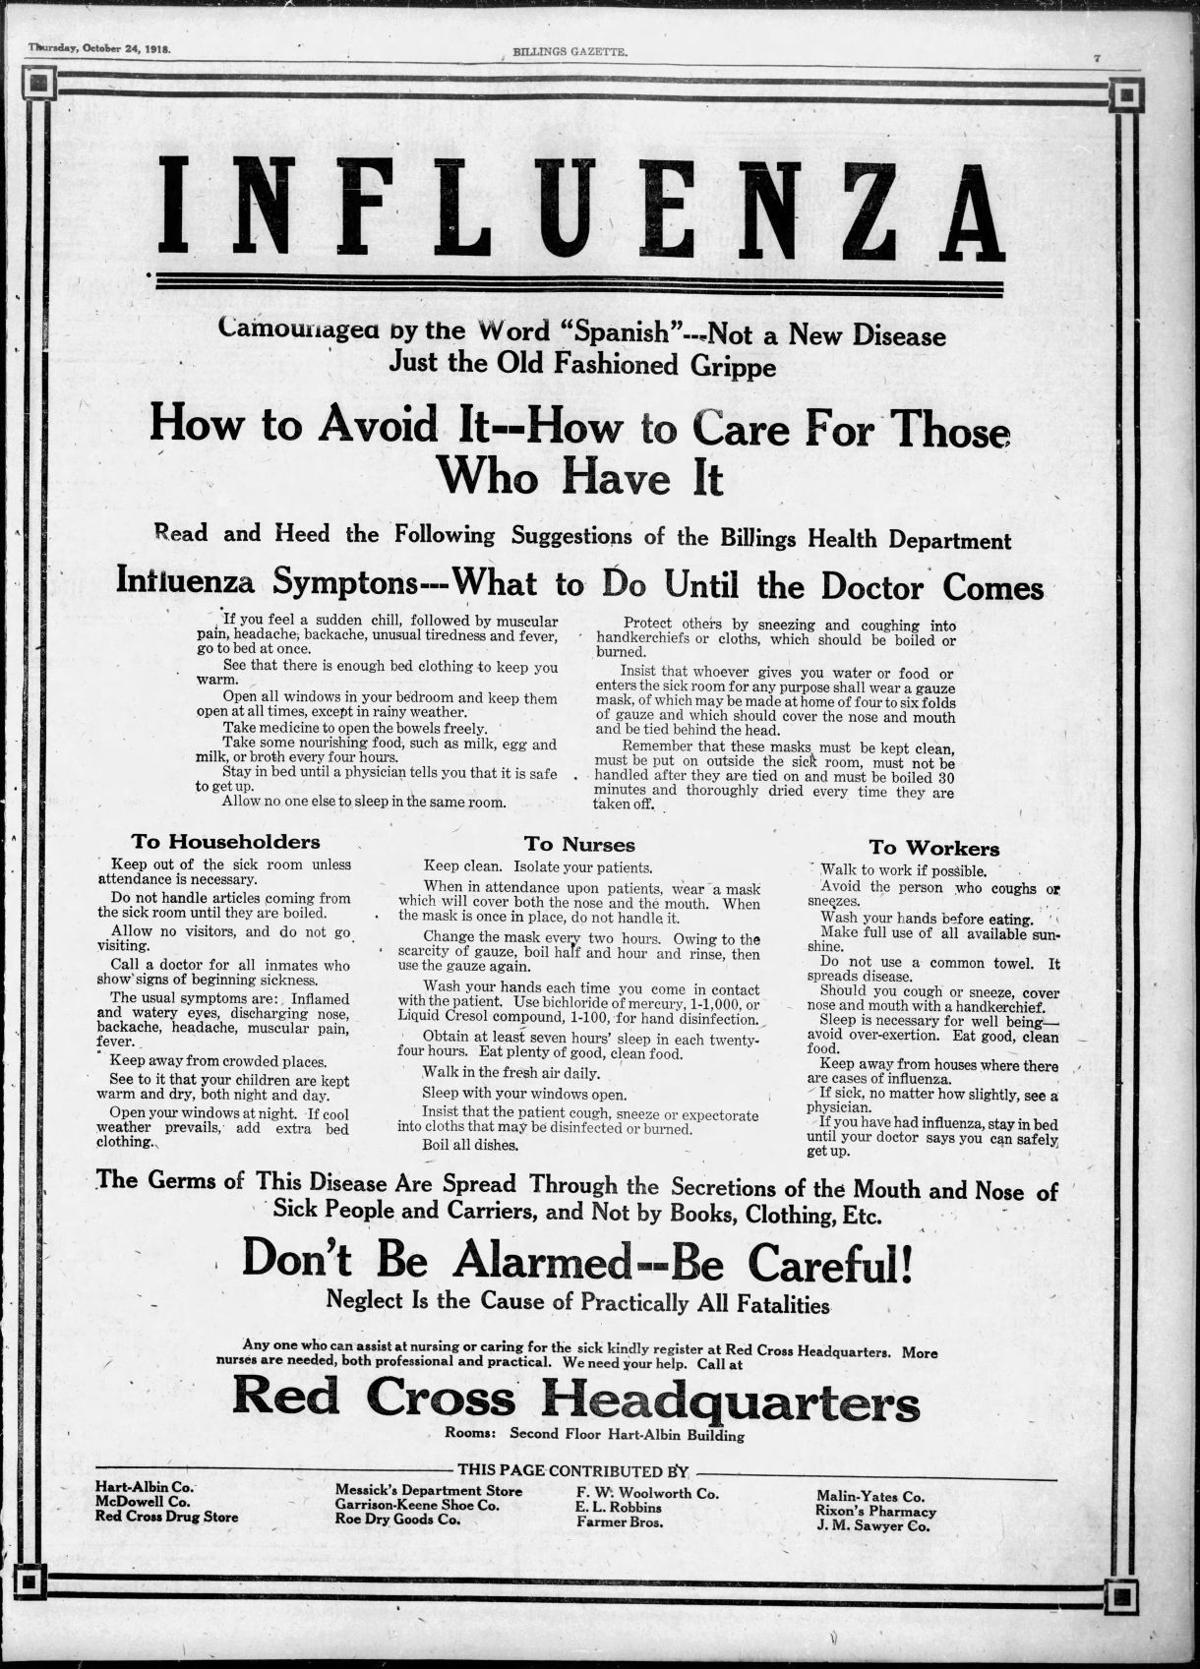 Influenza prevention and care tips, October 1918